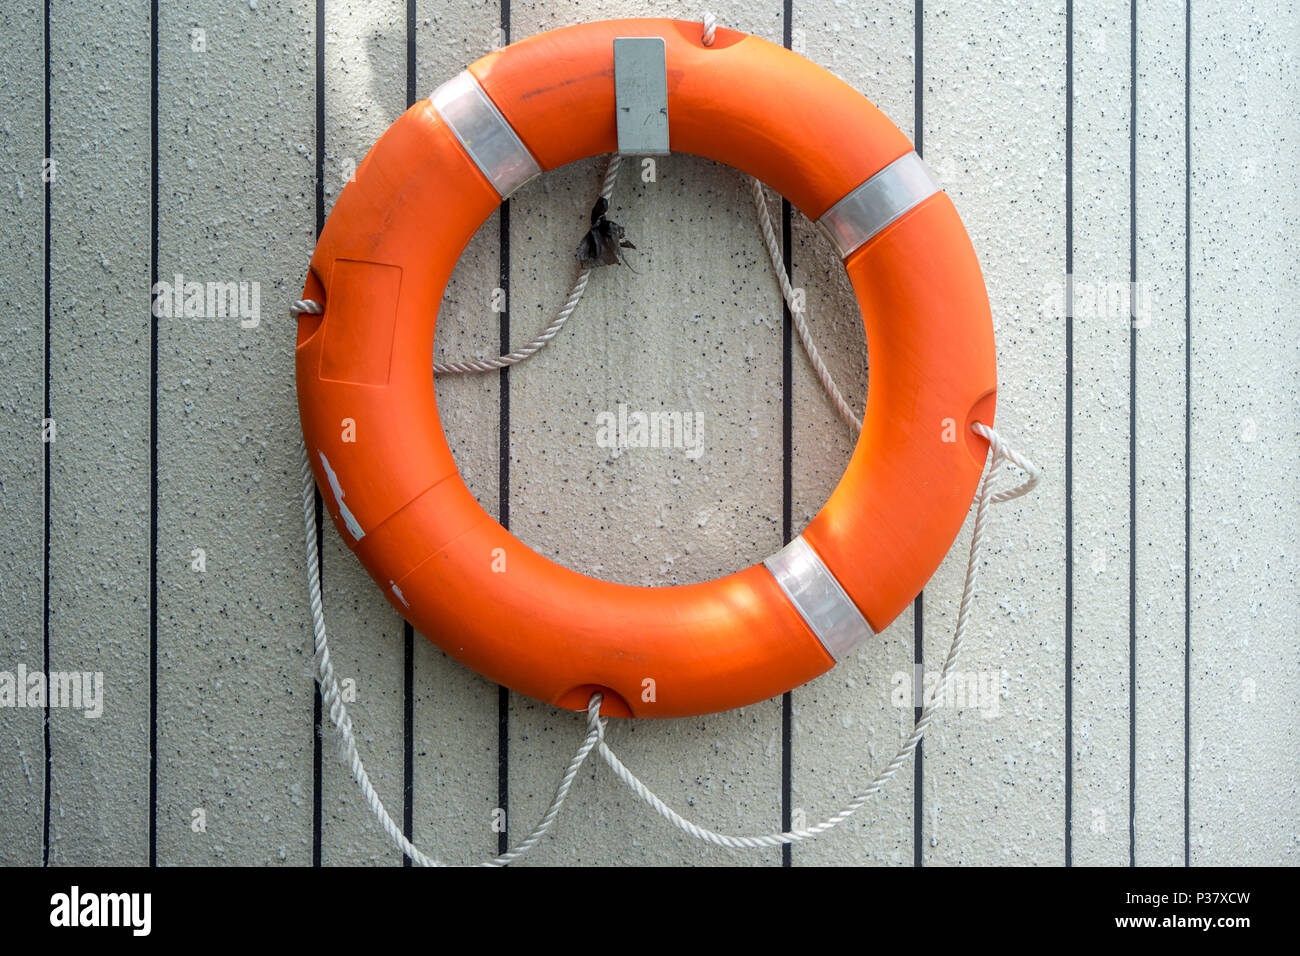 Orange Lifebuoy Hanging On Stone Cement Wall Water Rescue Emergency